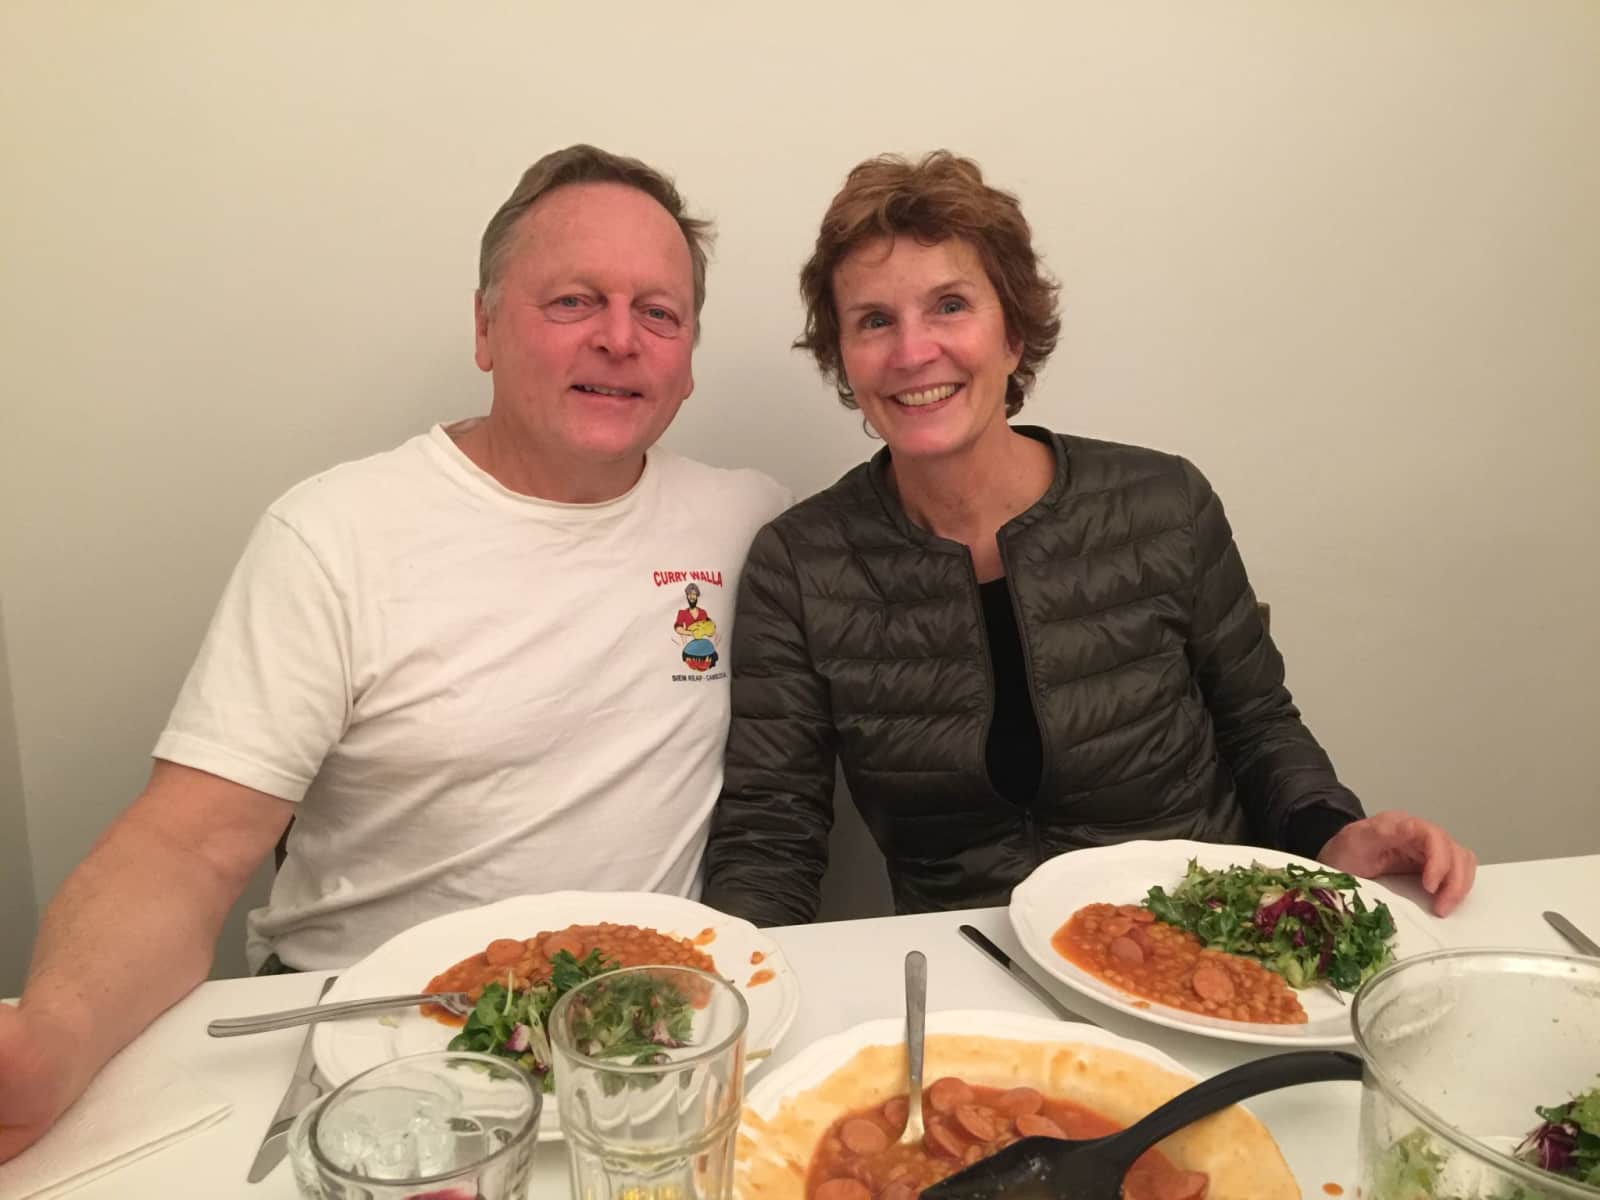 Beth & Don from Peterborough, Ontario, Canada